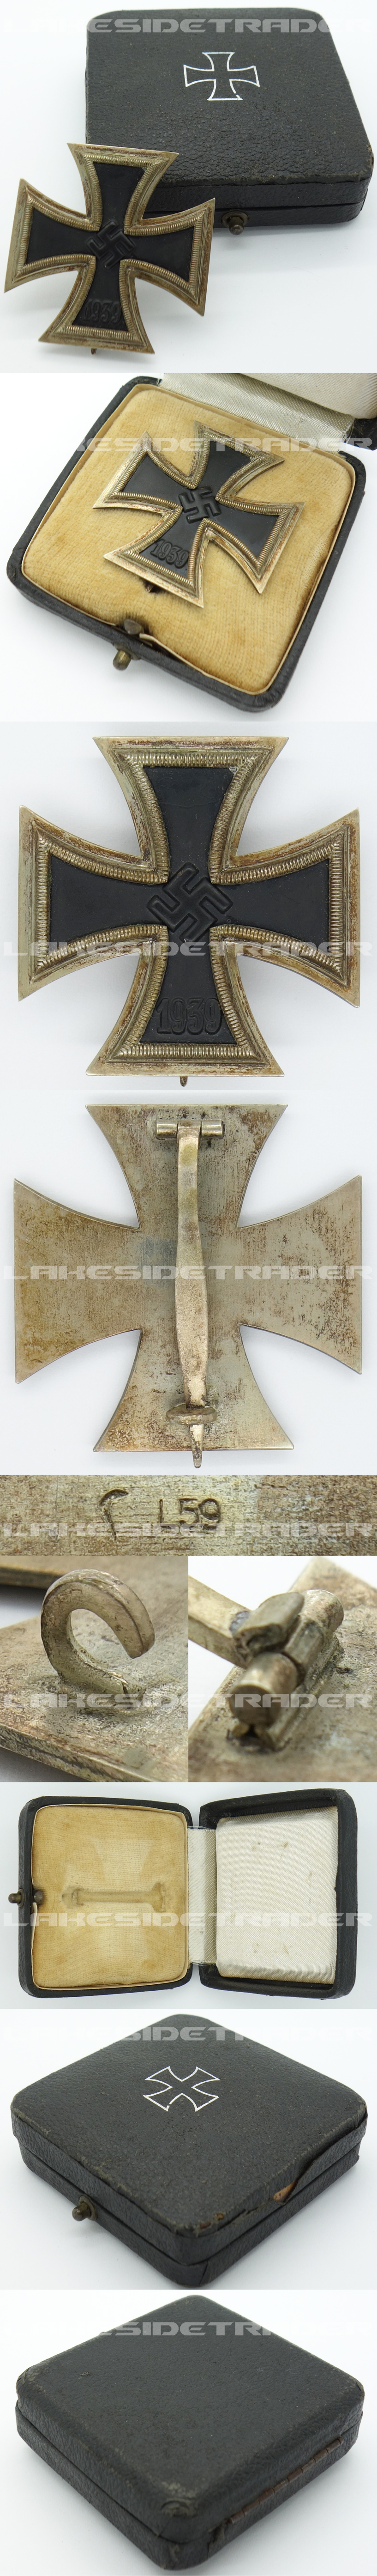 Cased 1st Class Iron Cross by L59